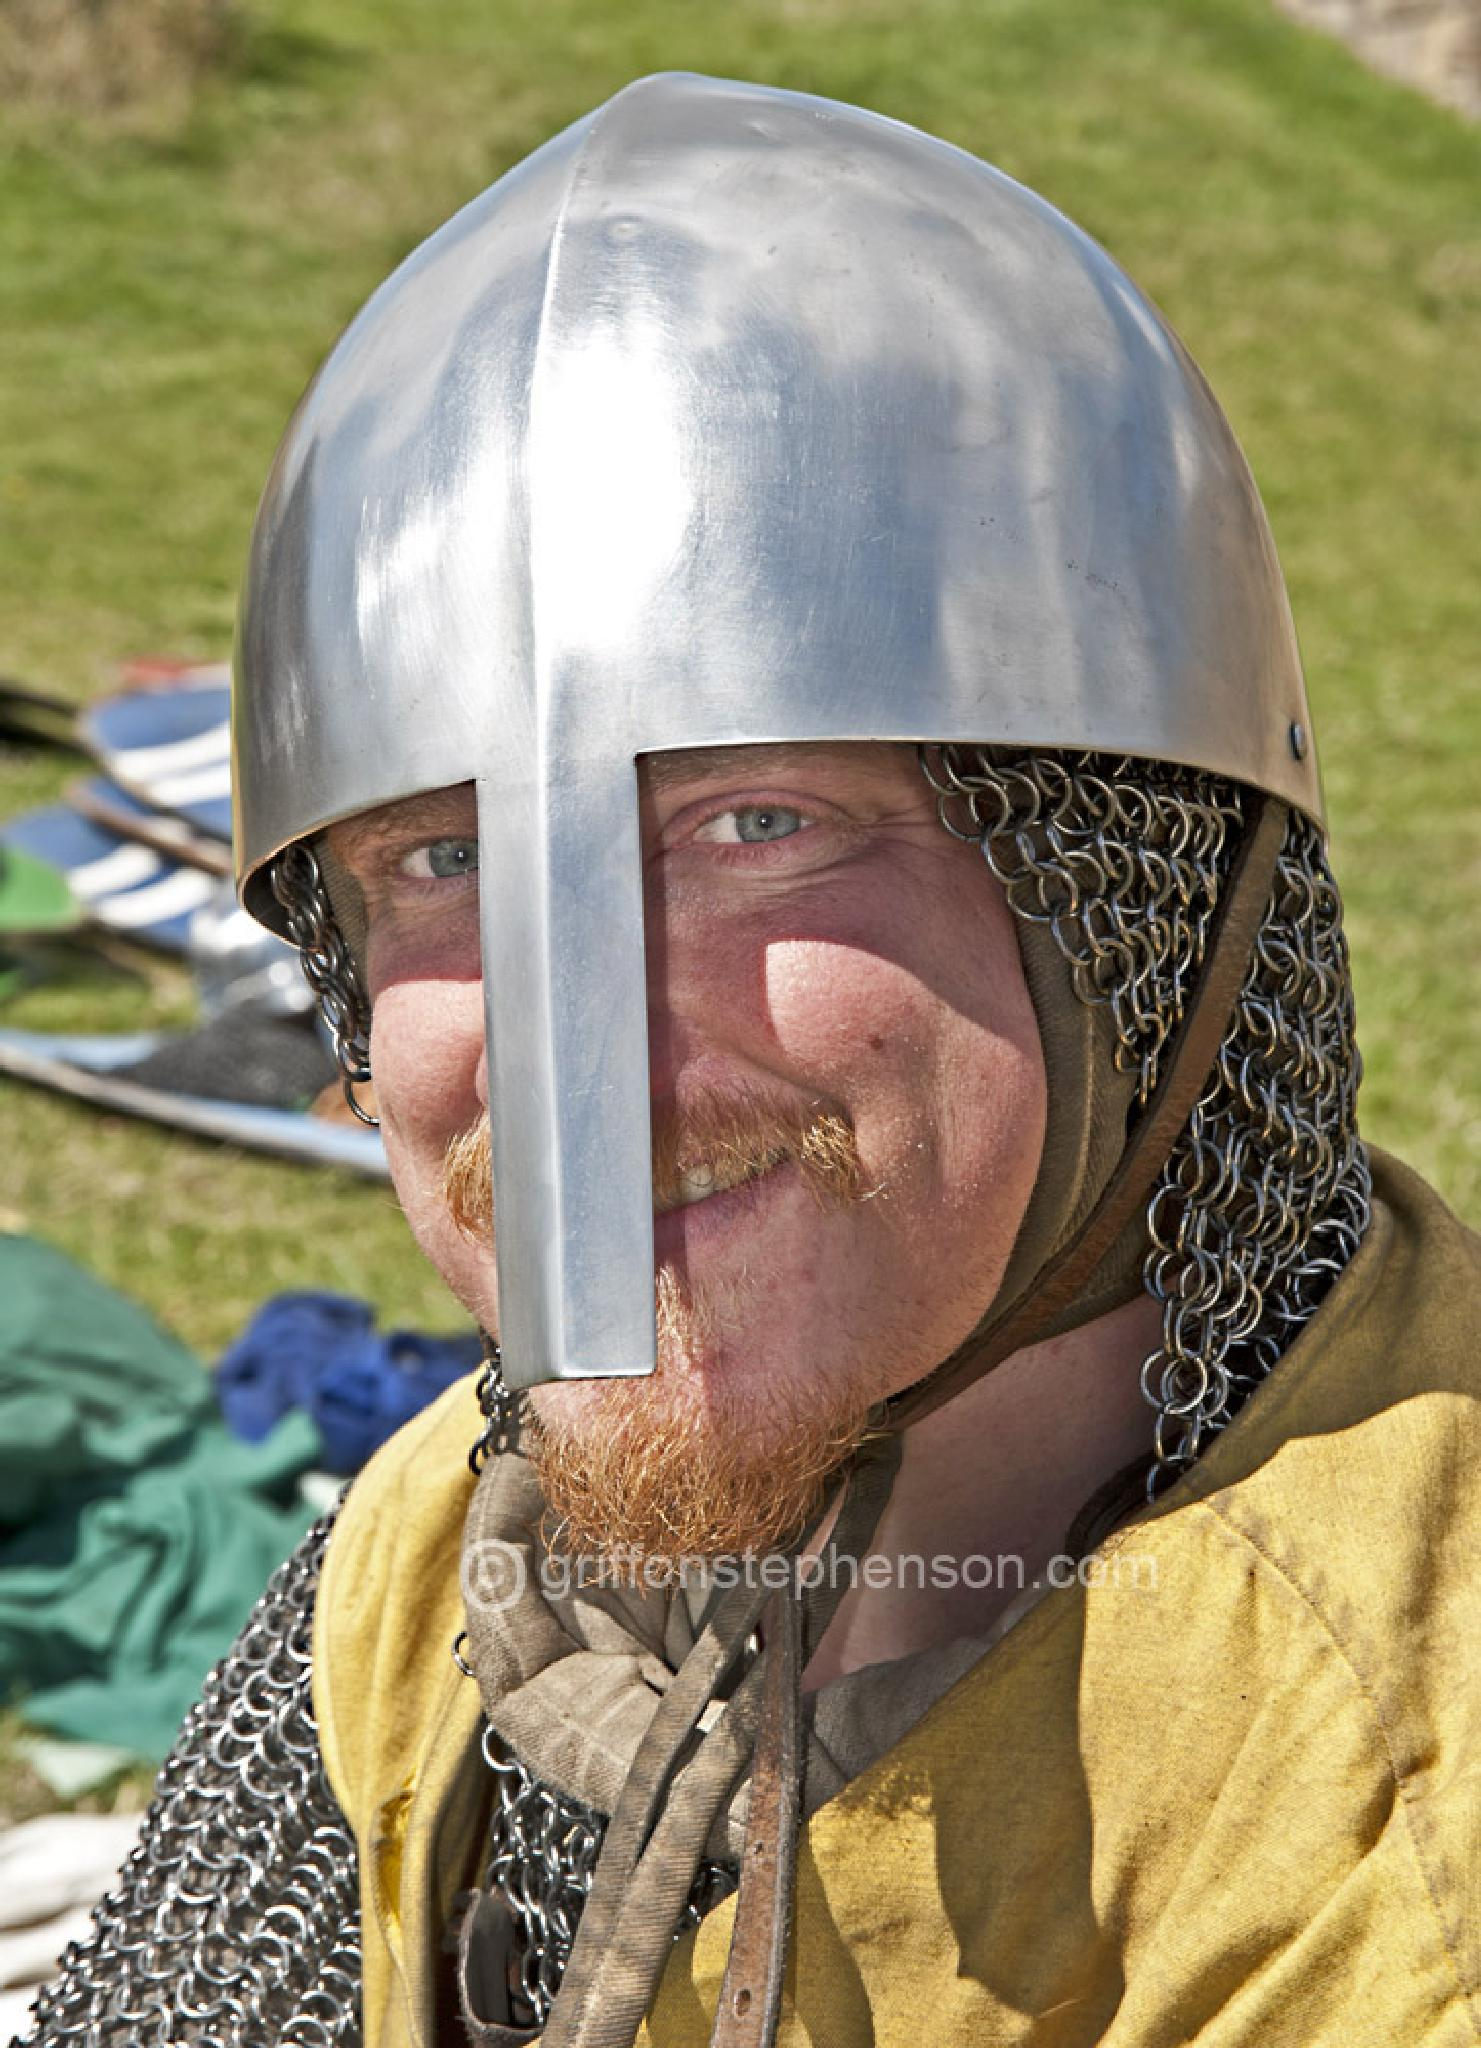 Man at Arms by Thomas Dyer@griffonstephenson.com